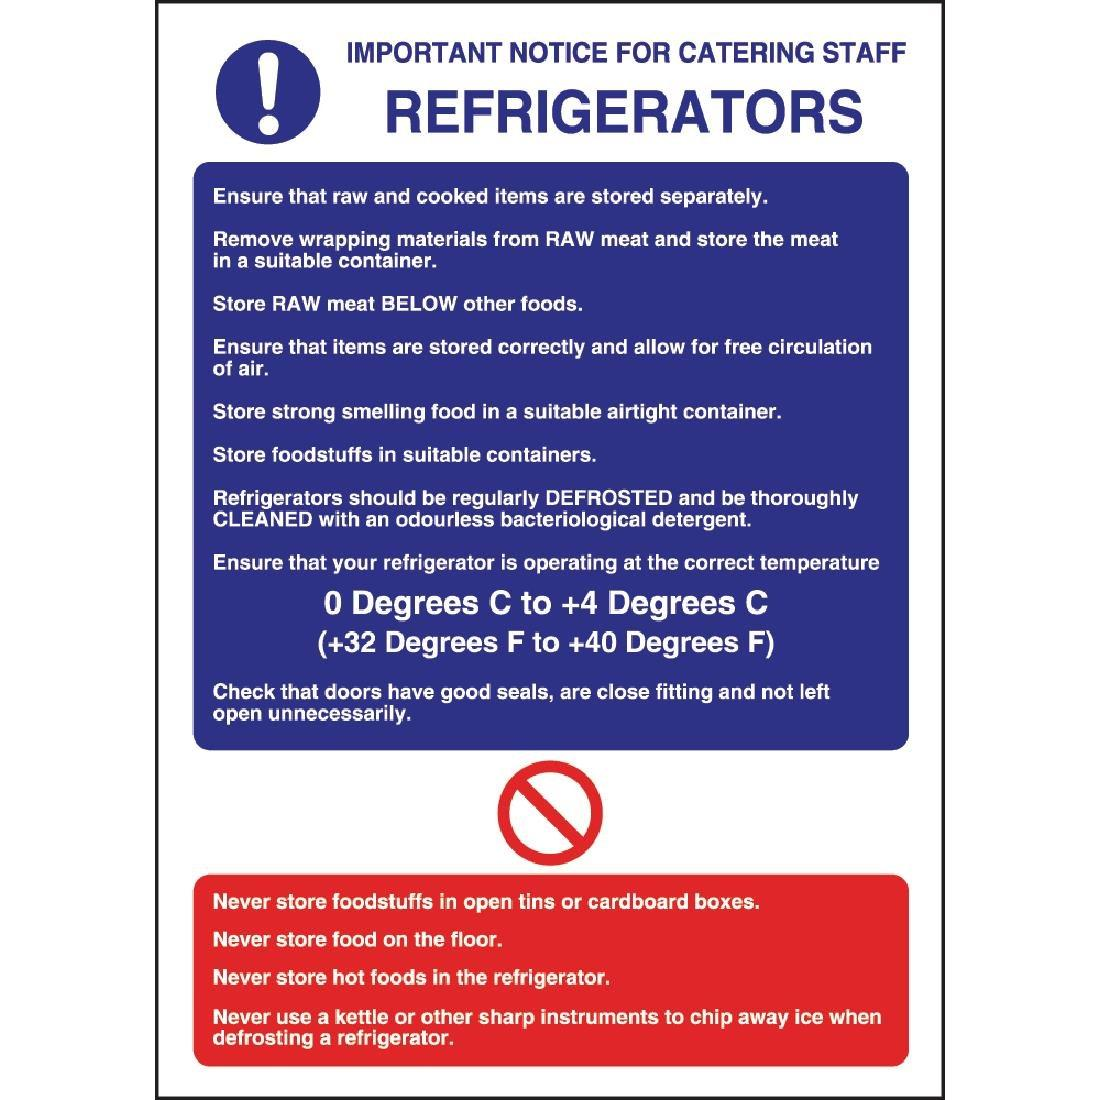 W196 - Refrigerator Guidelines Sign